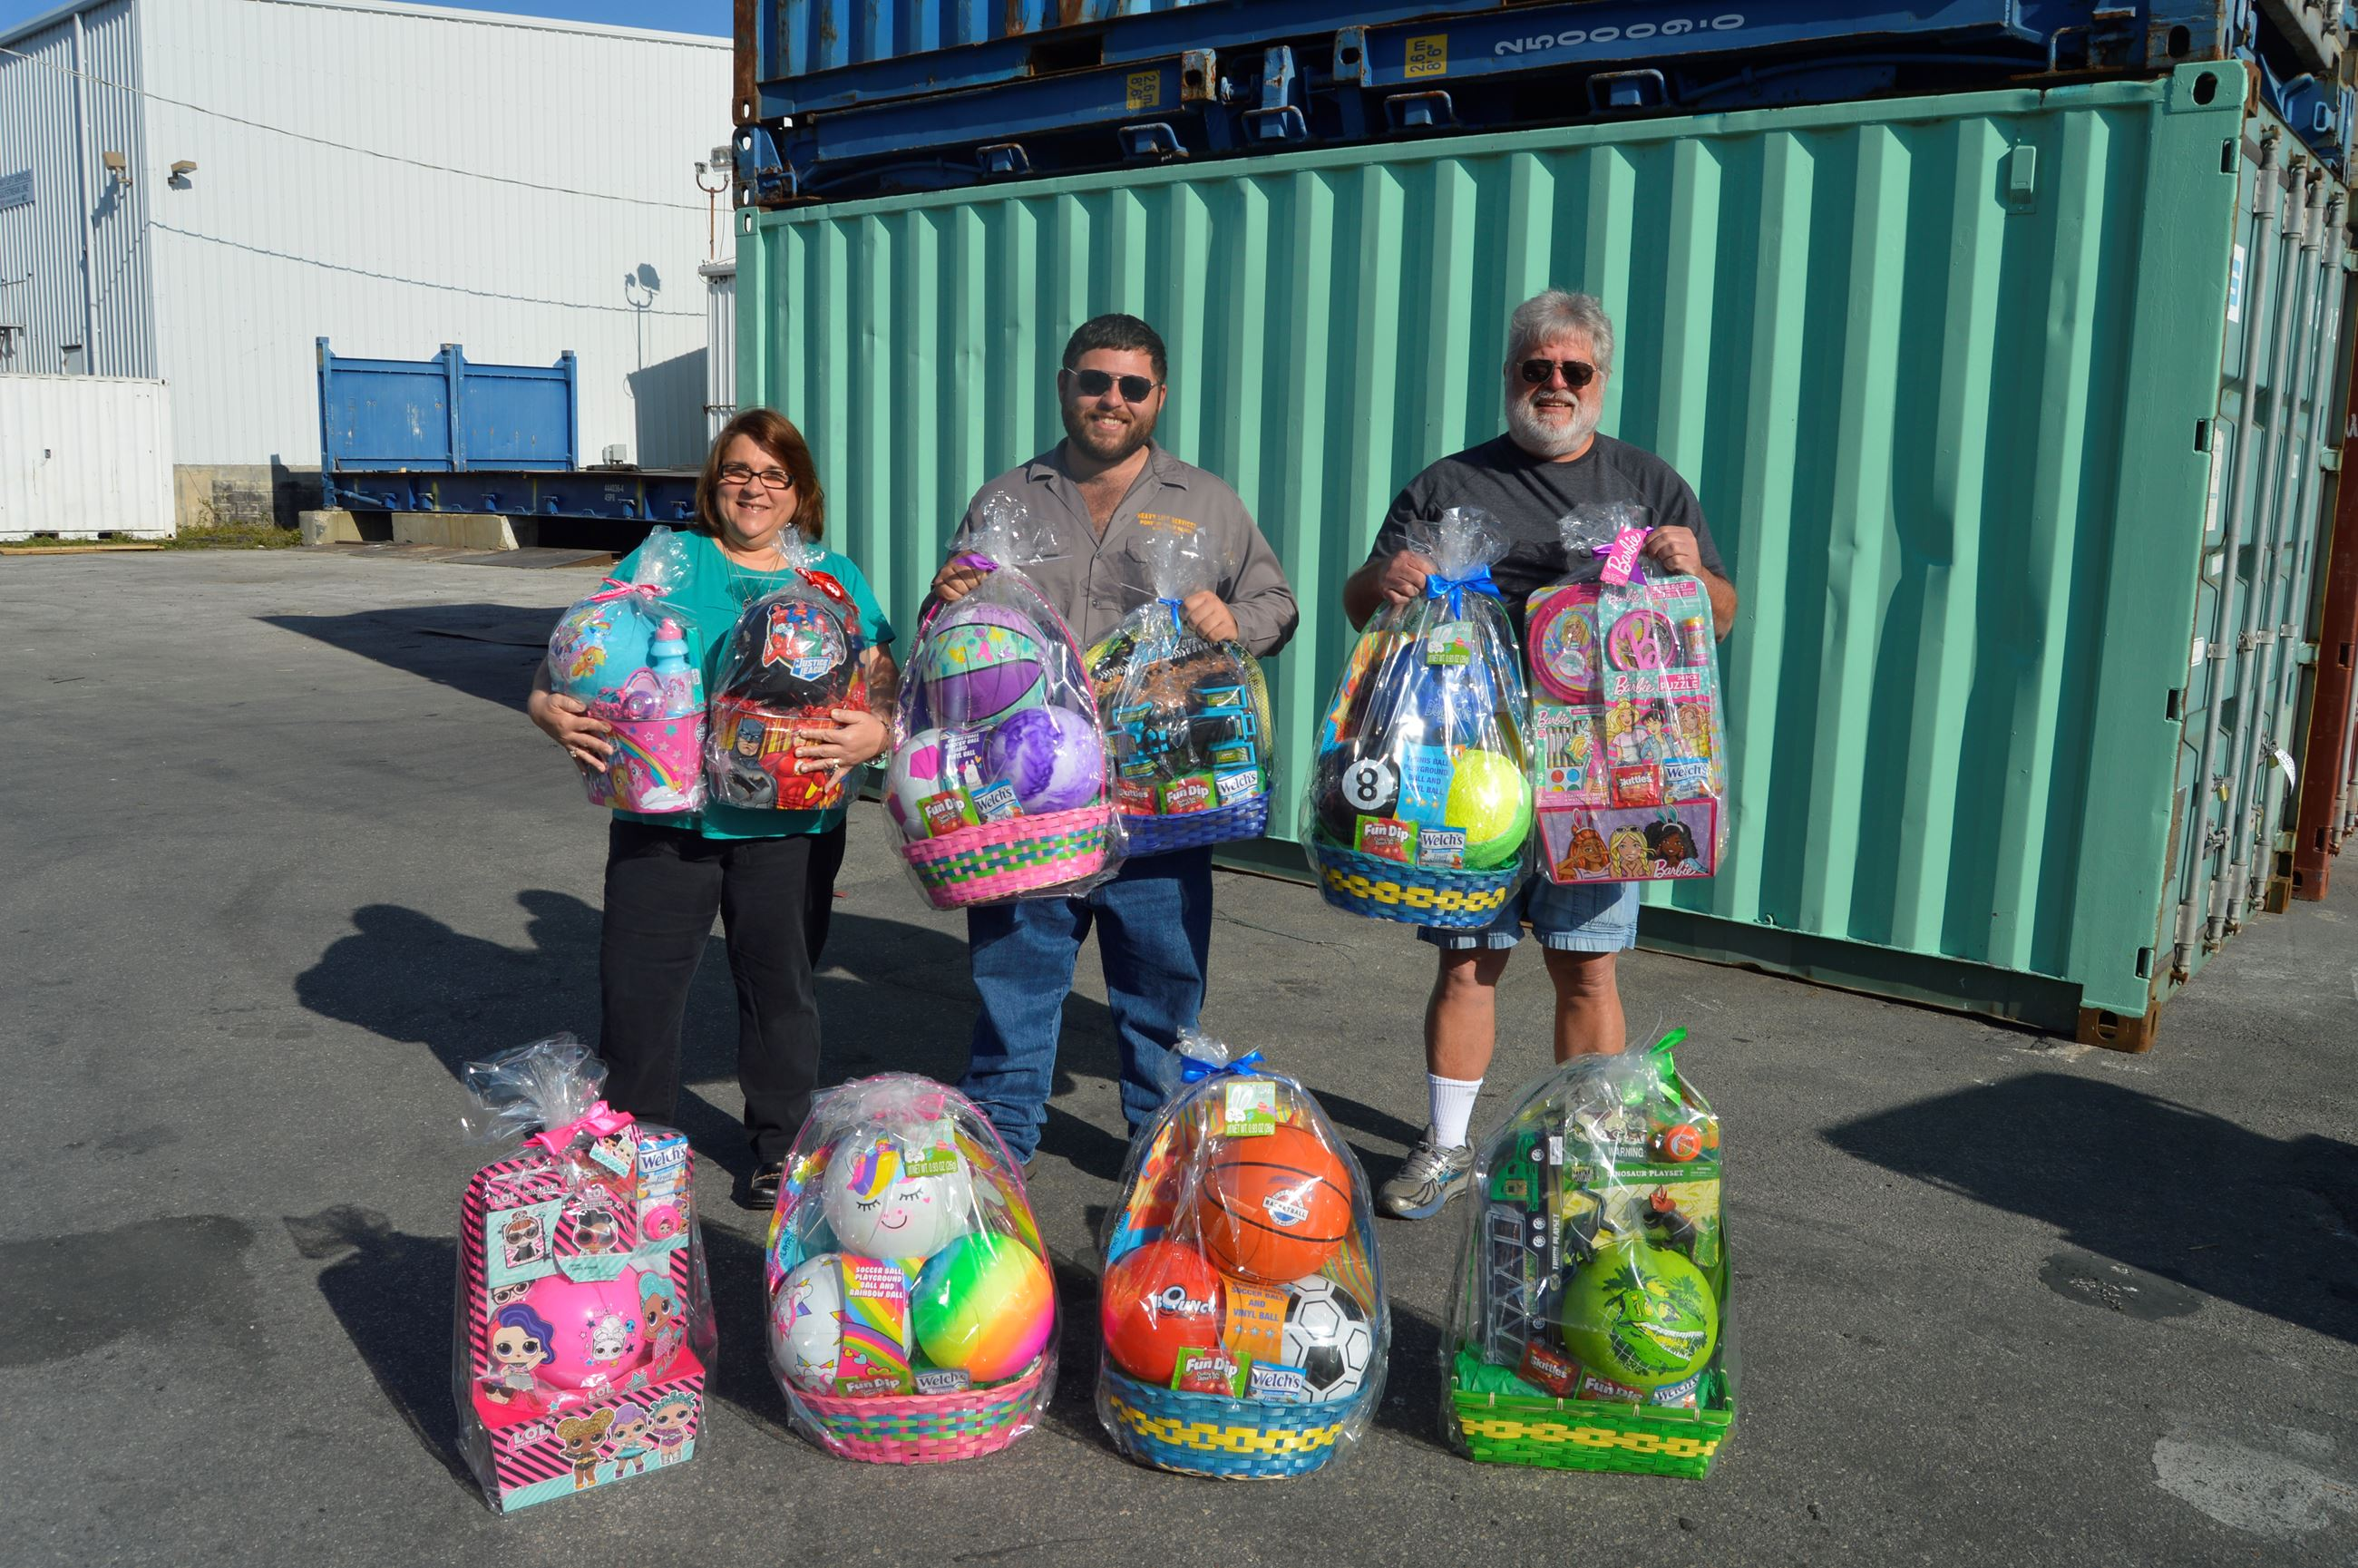 Easter baskets donated by Glen, Tina and Joey Dias with Gulfstream Line and Heavy Lift Services